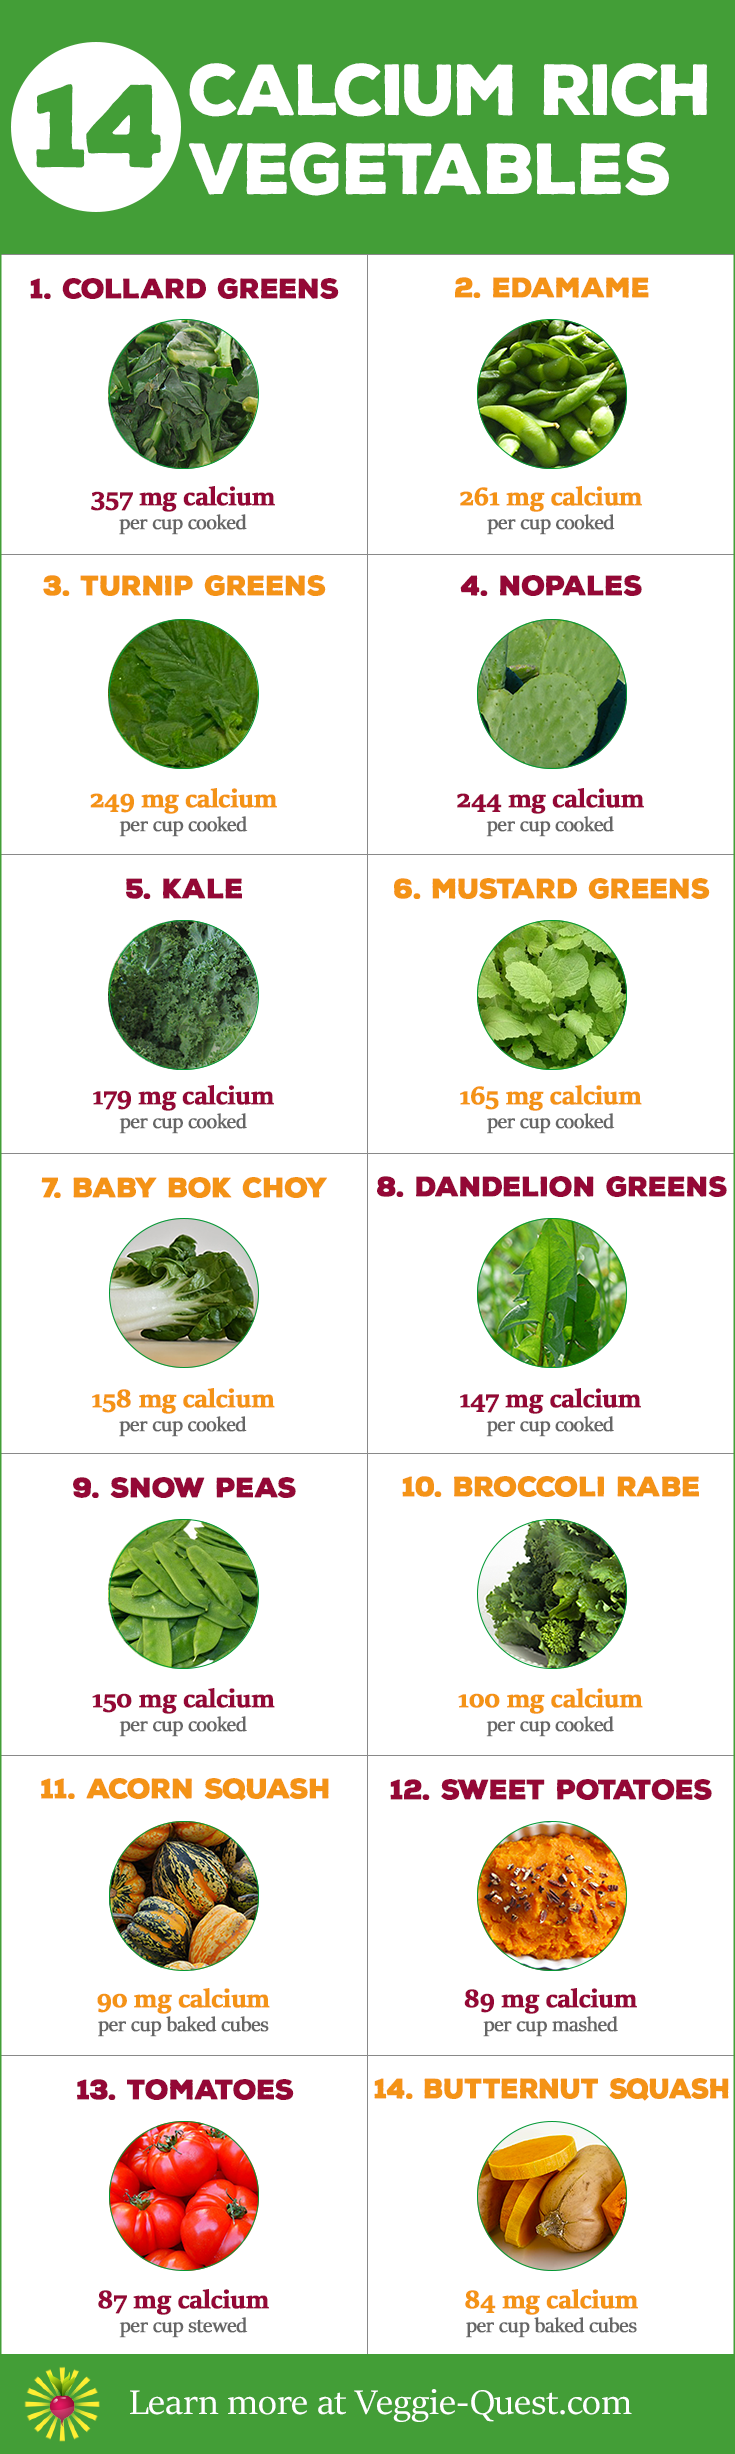 Getting DairyFree calcium is easy with these 14 Calcium